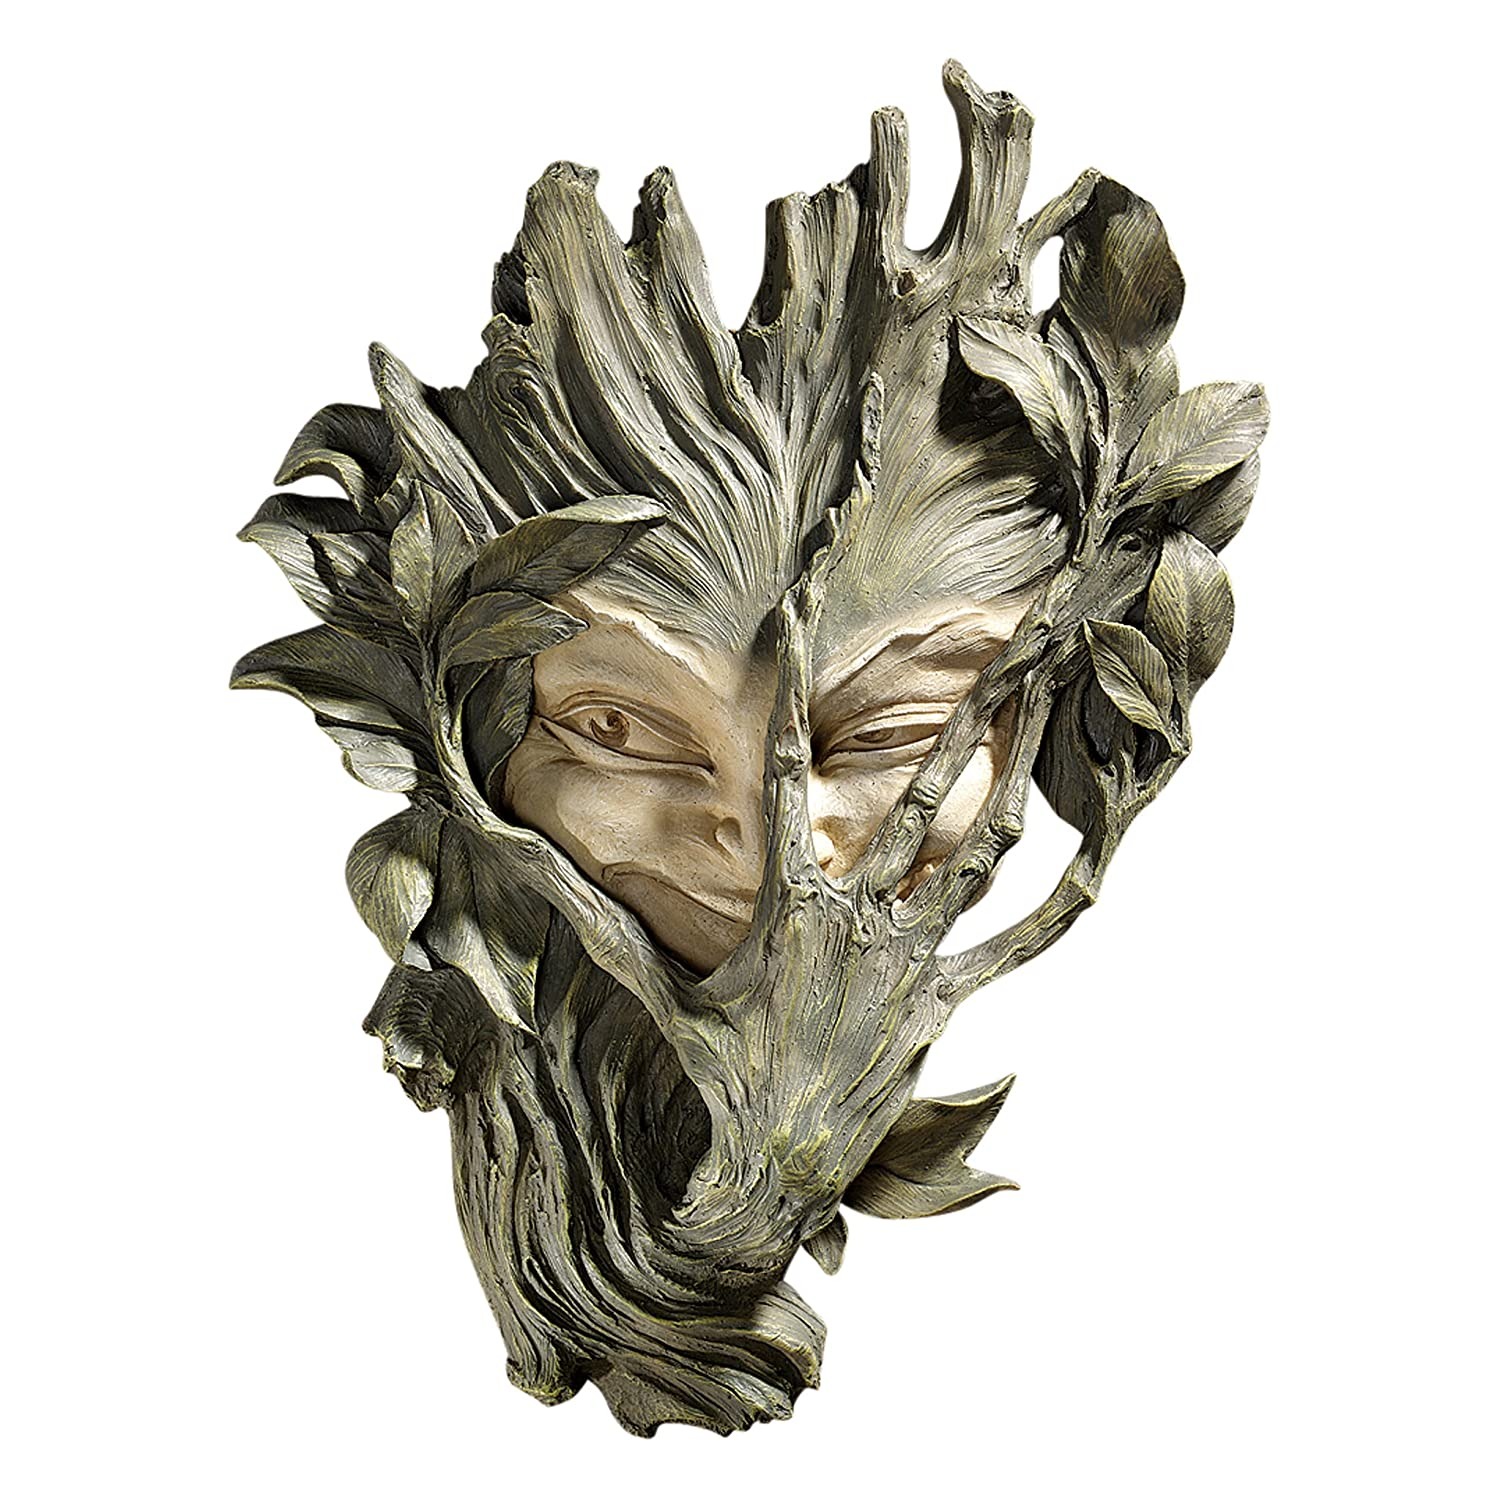 Design Toscano Bashful Wood Sprite Tree Face Mystic Decor Wall Sculpture, 13 Inch, Polyresin, Two Tone Stone